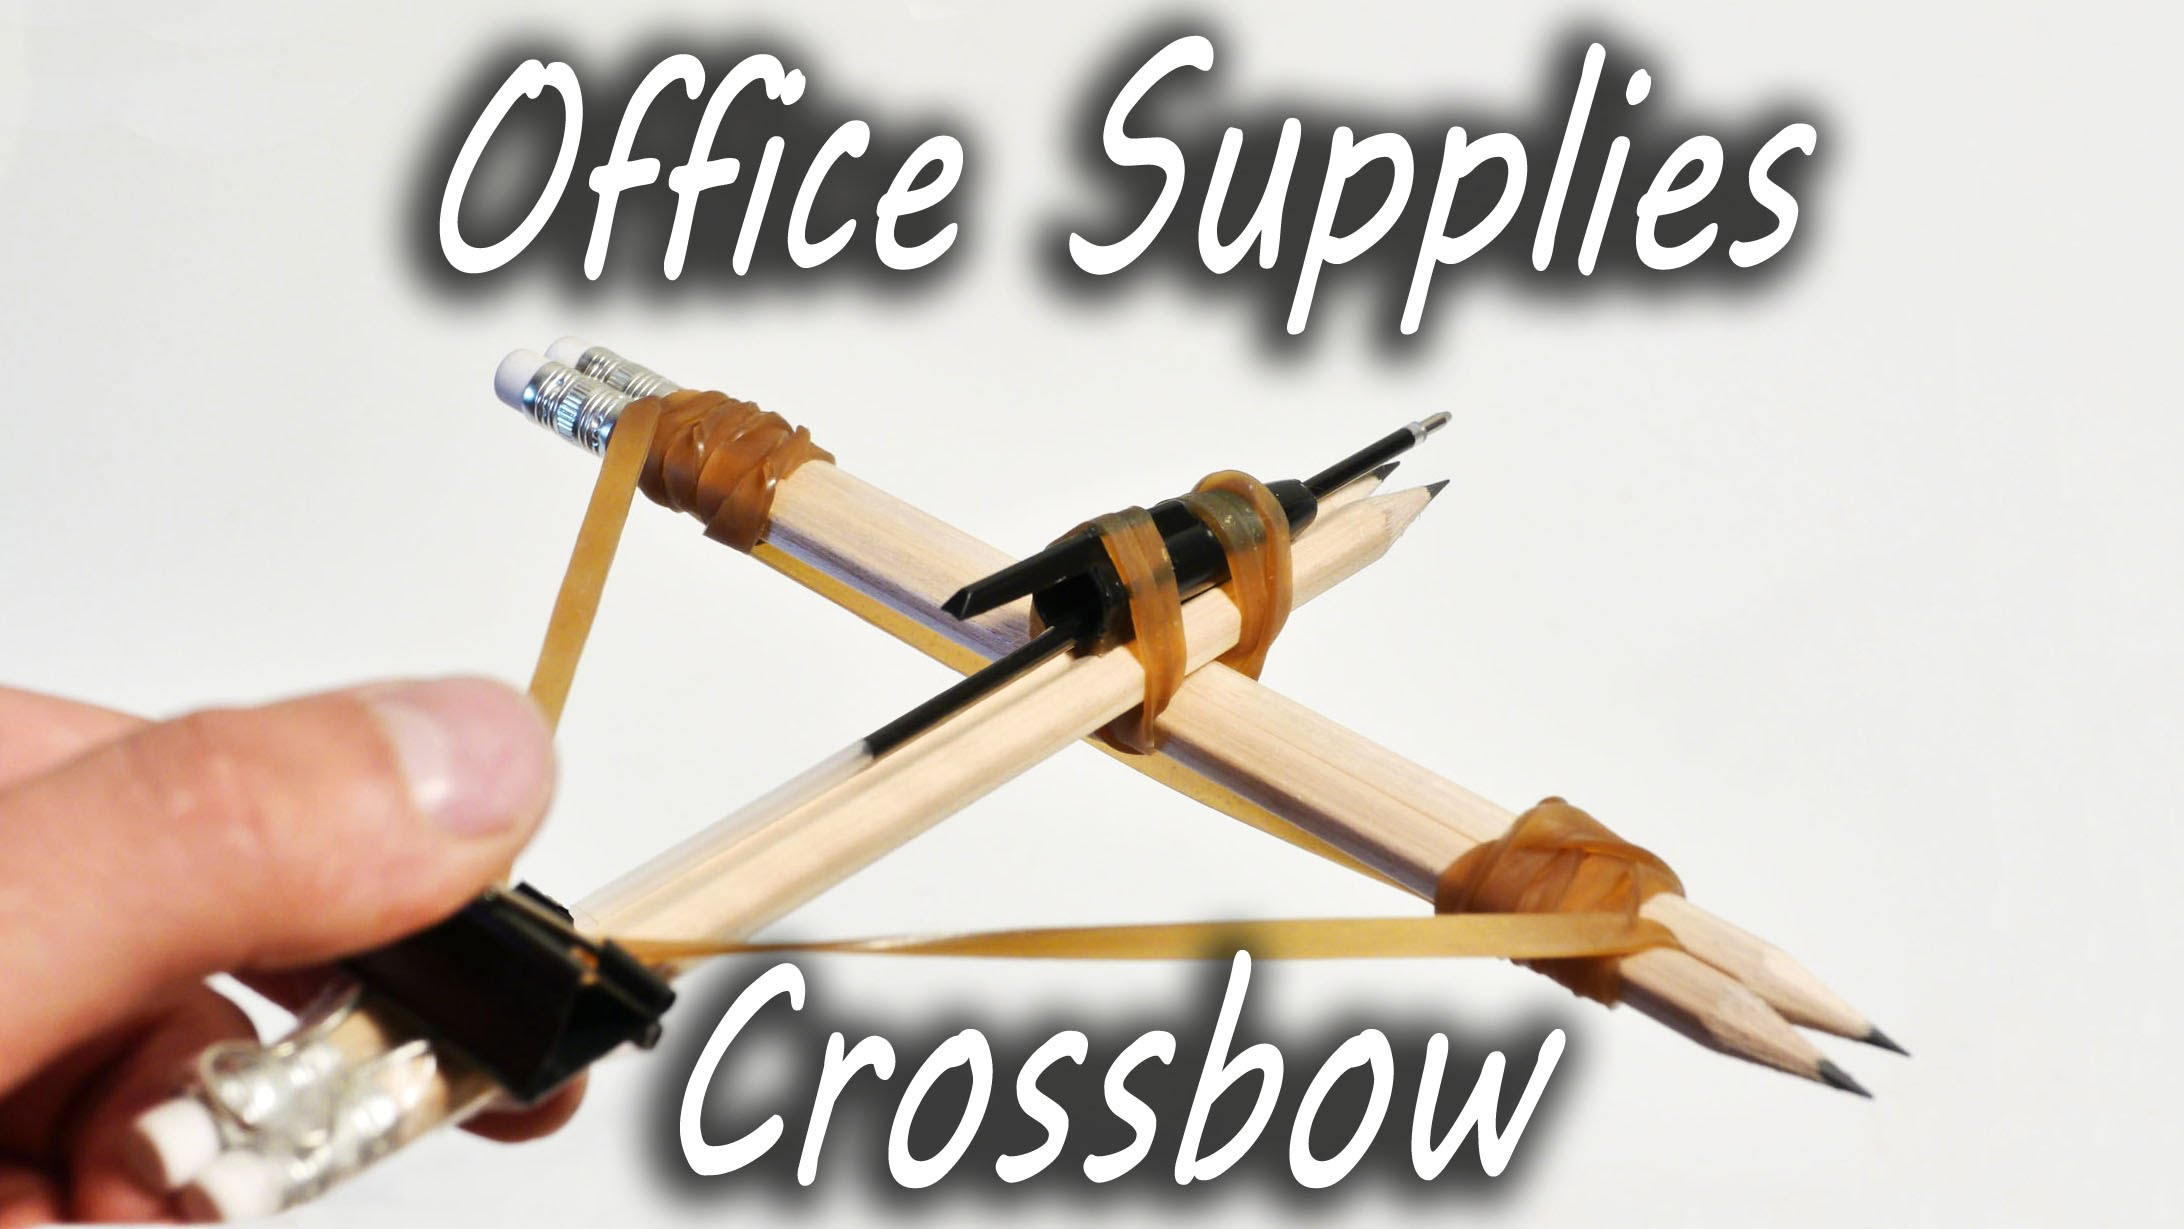 How To Make A Crossbow Out Of Office Supplies